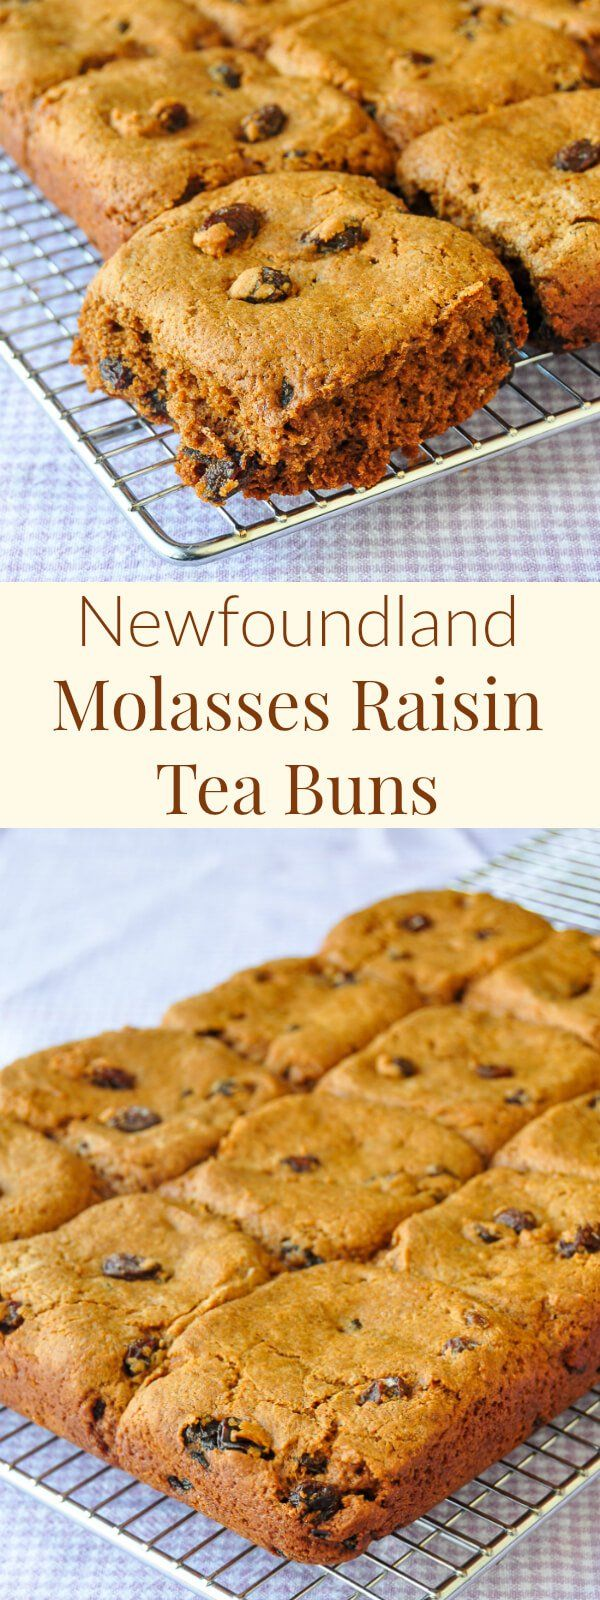 Newfoundland Molasses Raisin Tea Buns - my decades old recipe for soft, delicious, sweet molasses raisin tea buns that can be made using cinnamon as well. Perfect for a mug up any time.